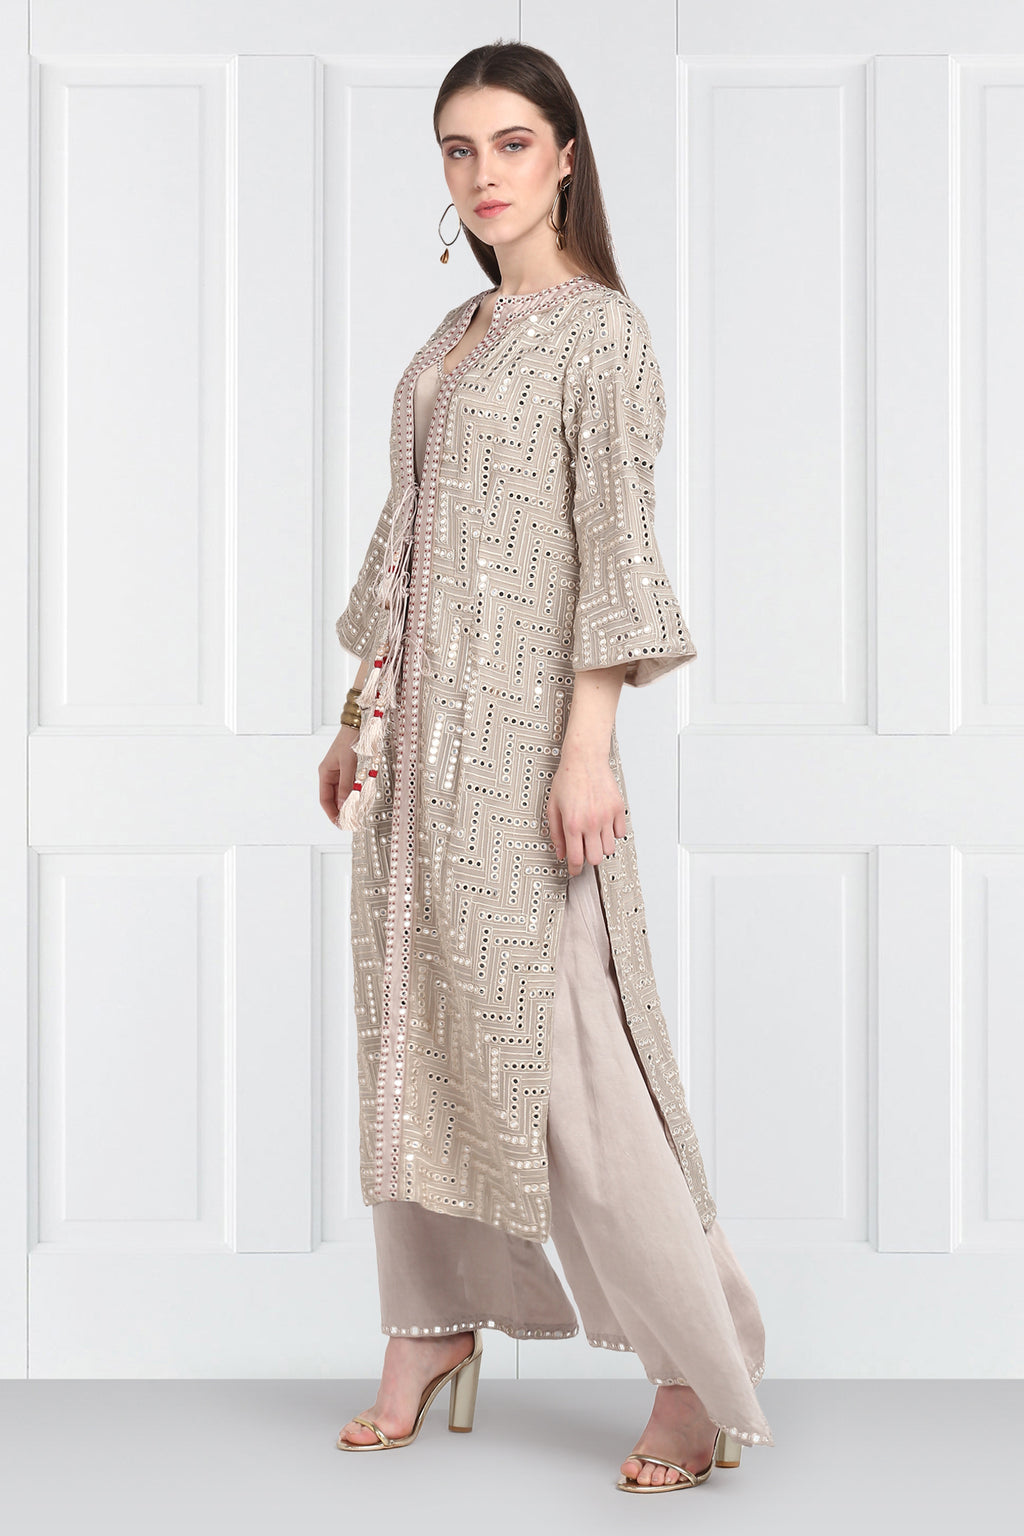 Grey Long Mirrorwork Overlay Bell Sleeves jacket with Tassles